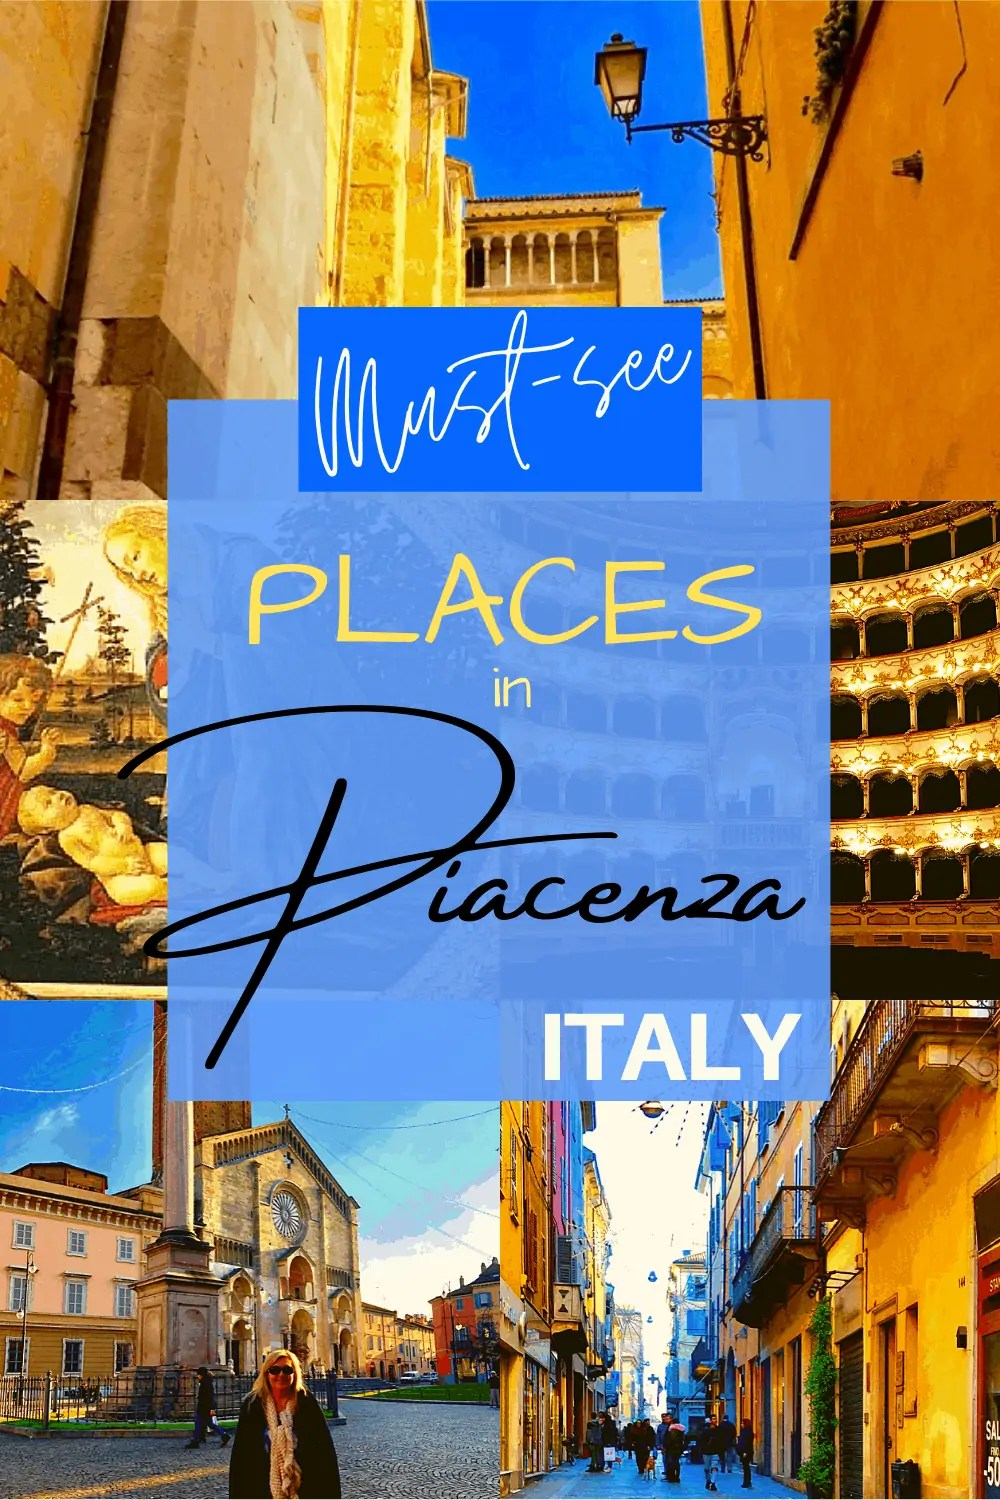 Must see Piacenza Italy